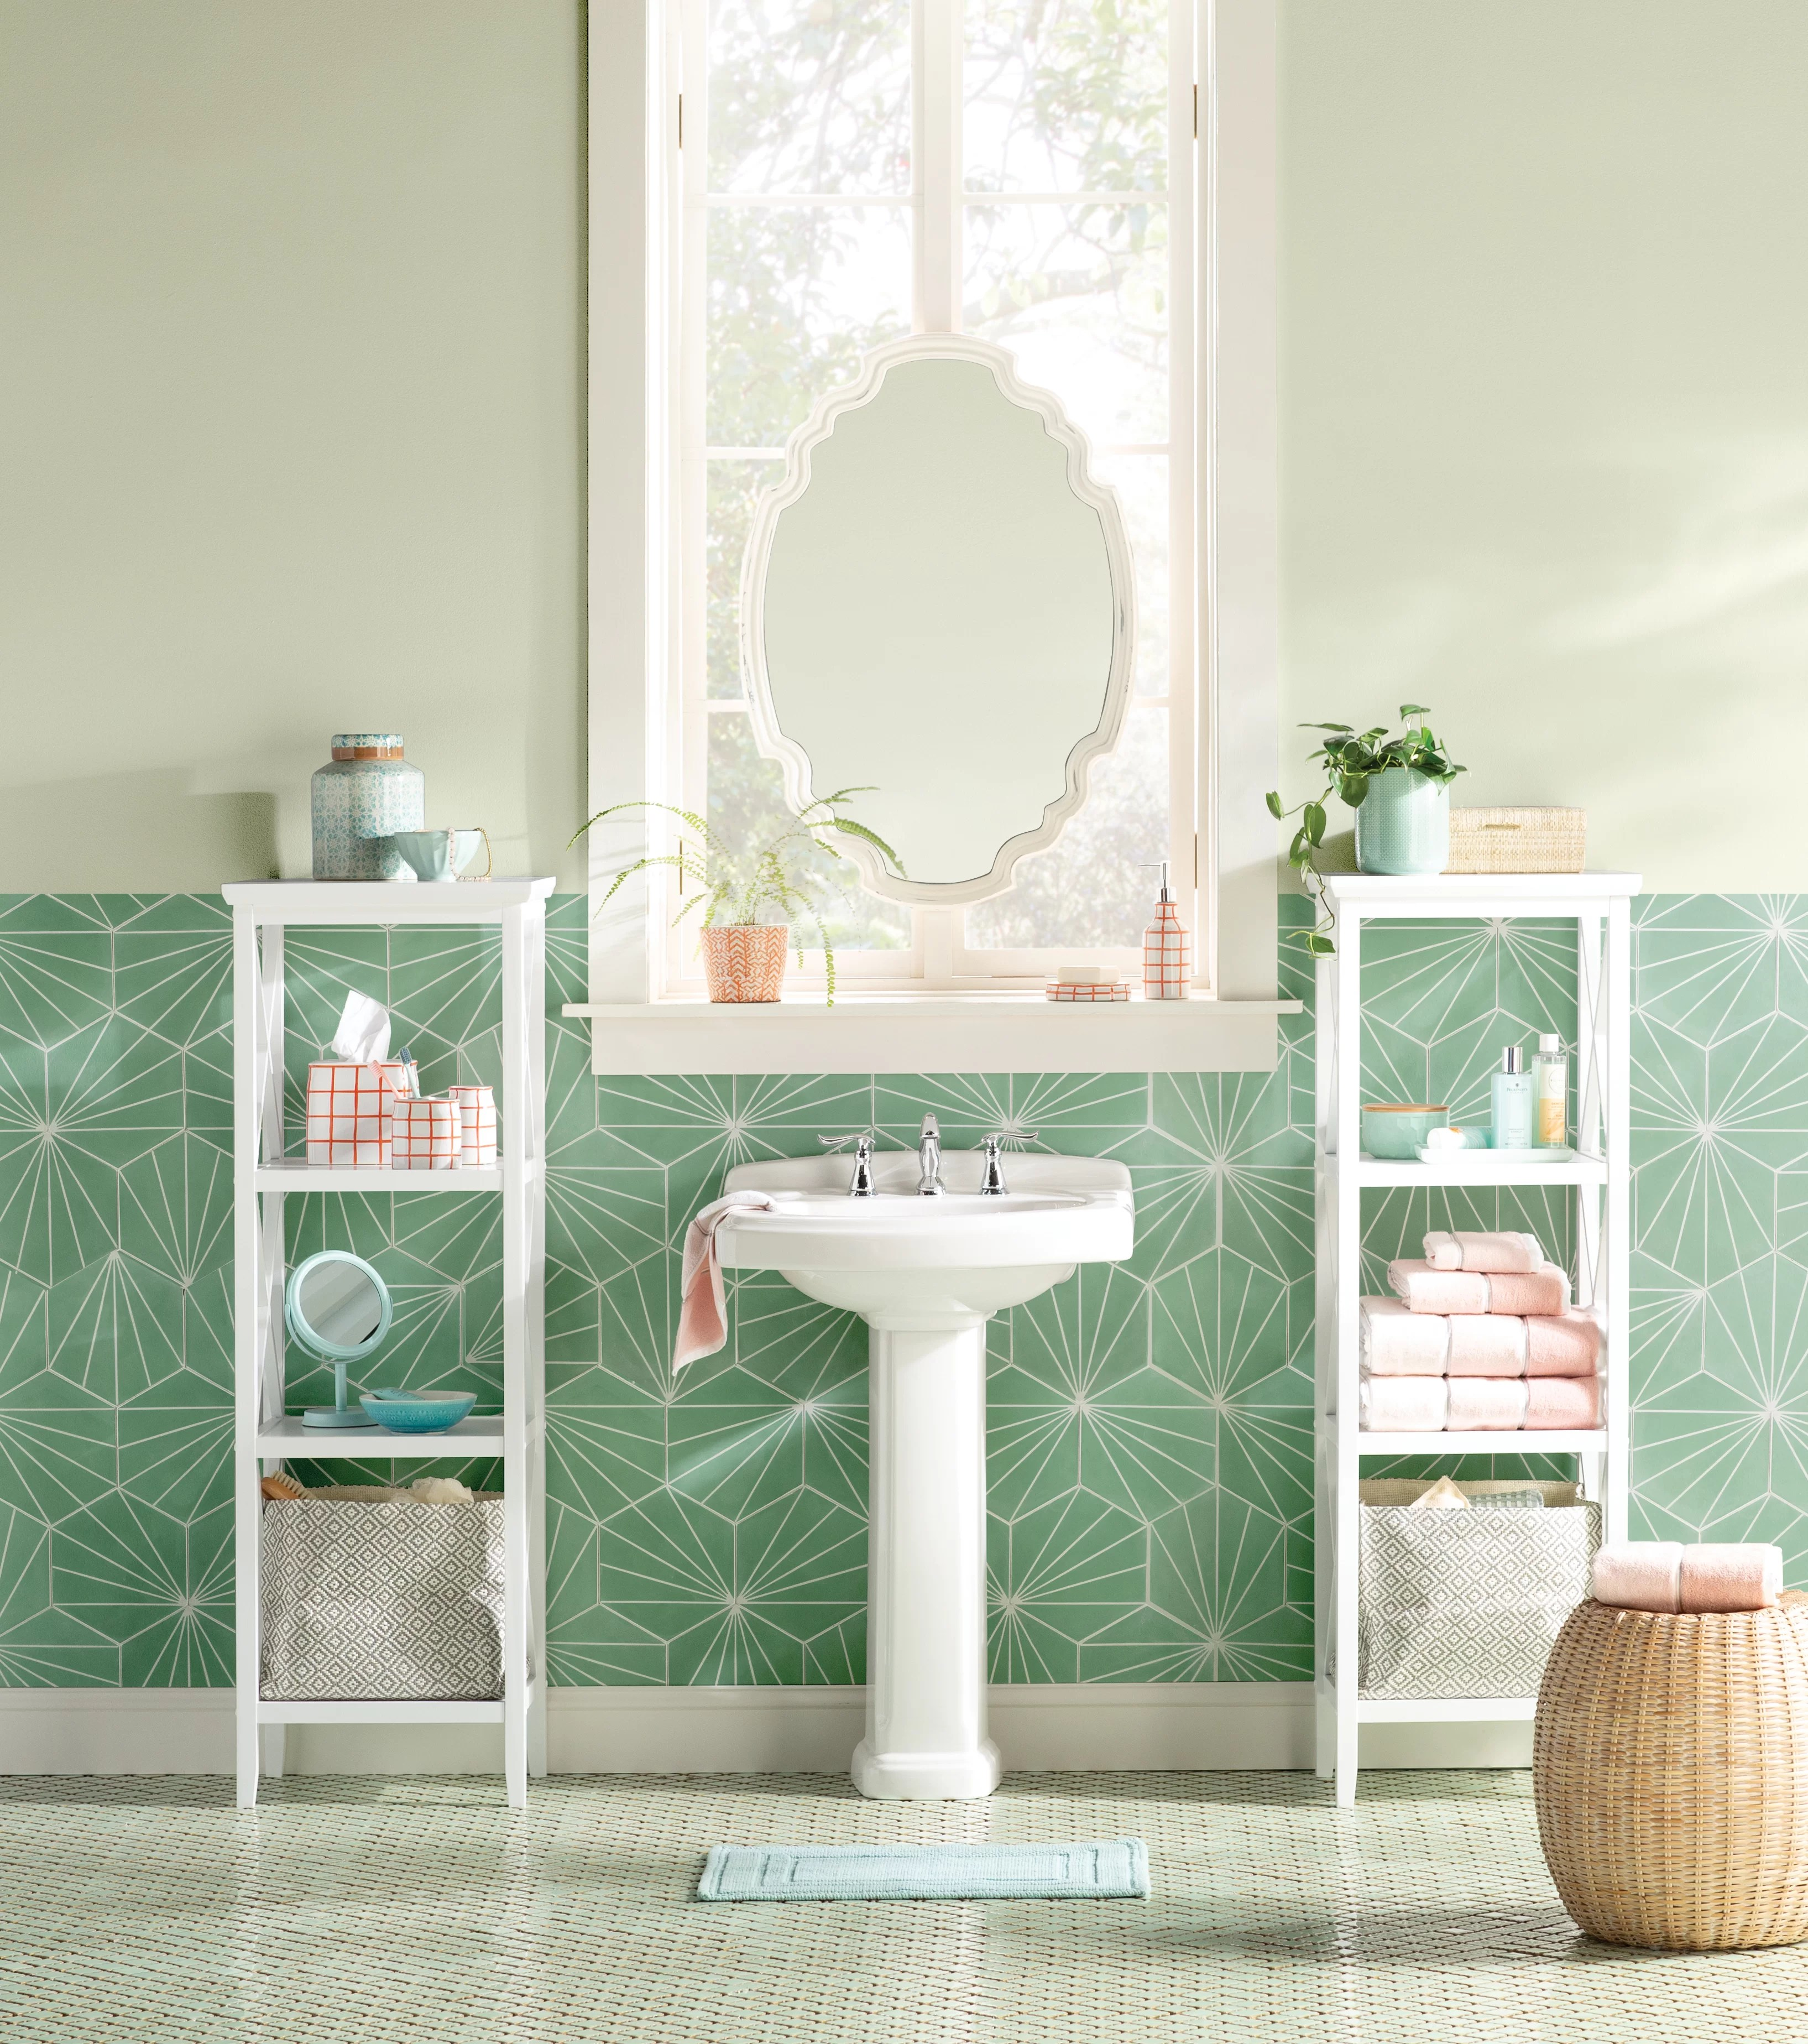 12 Ways To Update Your Bathroom Decor Wayfair Co Uk